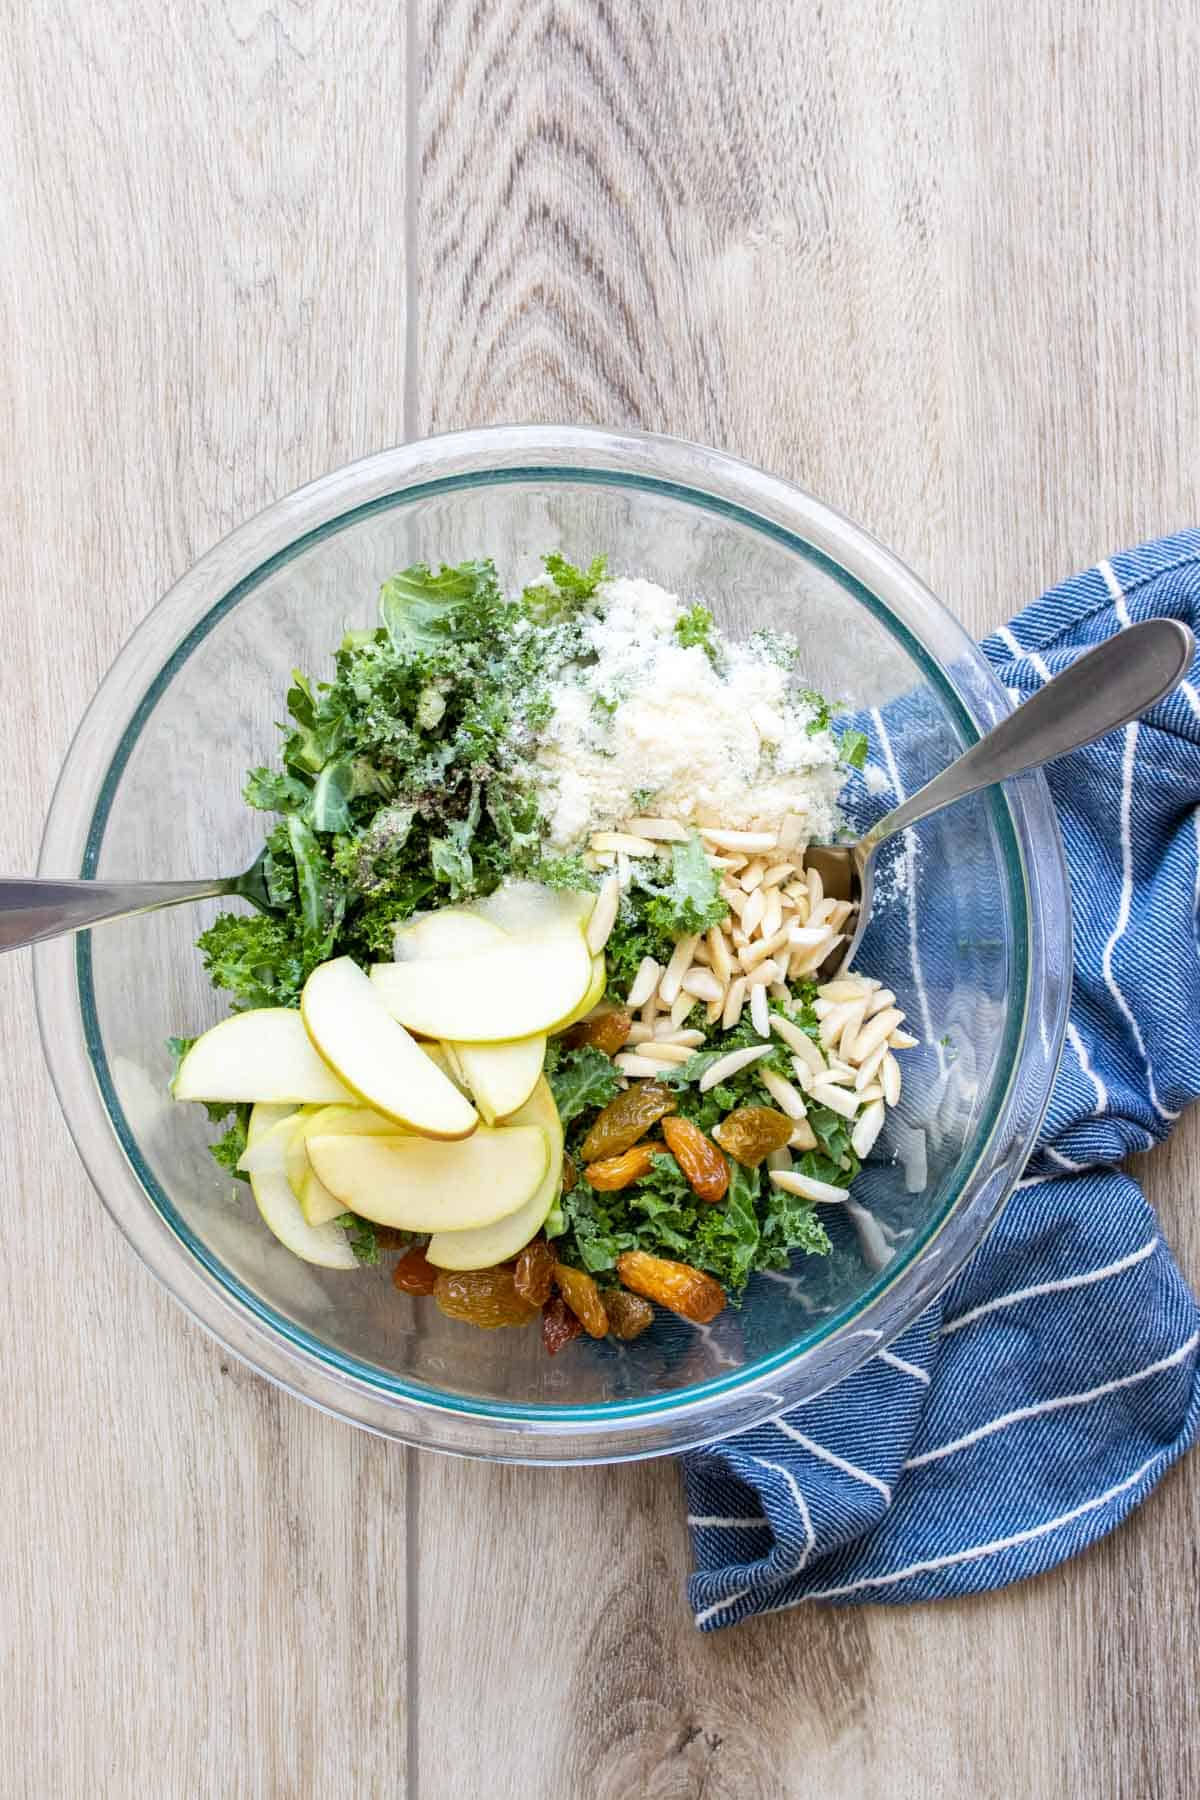 A glass bowl with kale, apples, nuts and Parmesan before being mixed